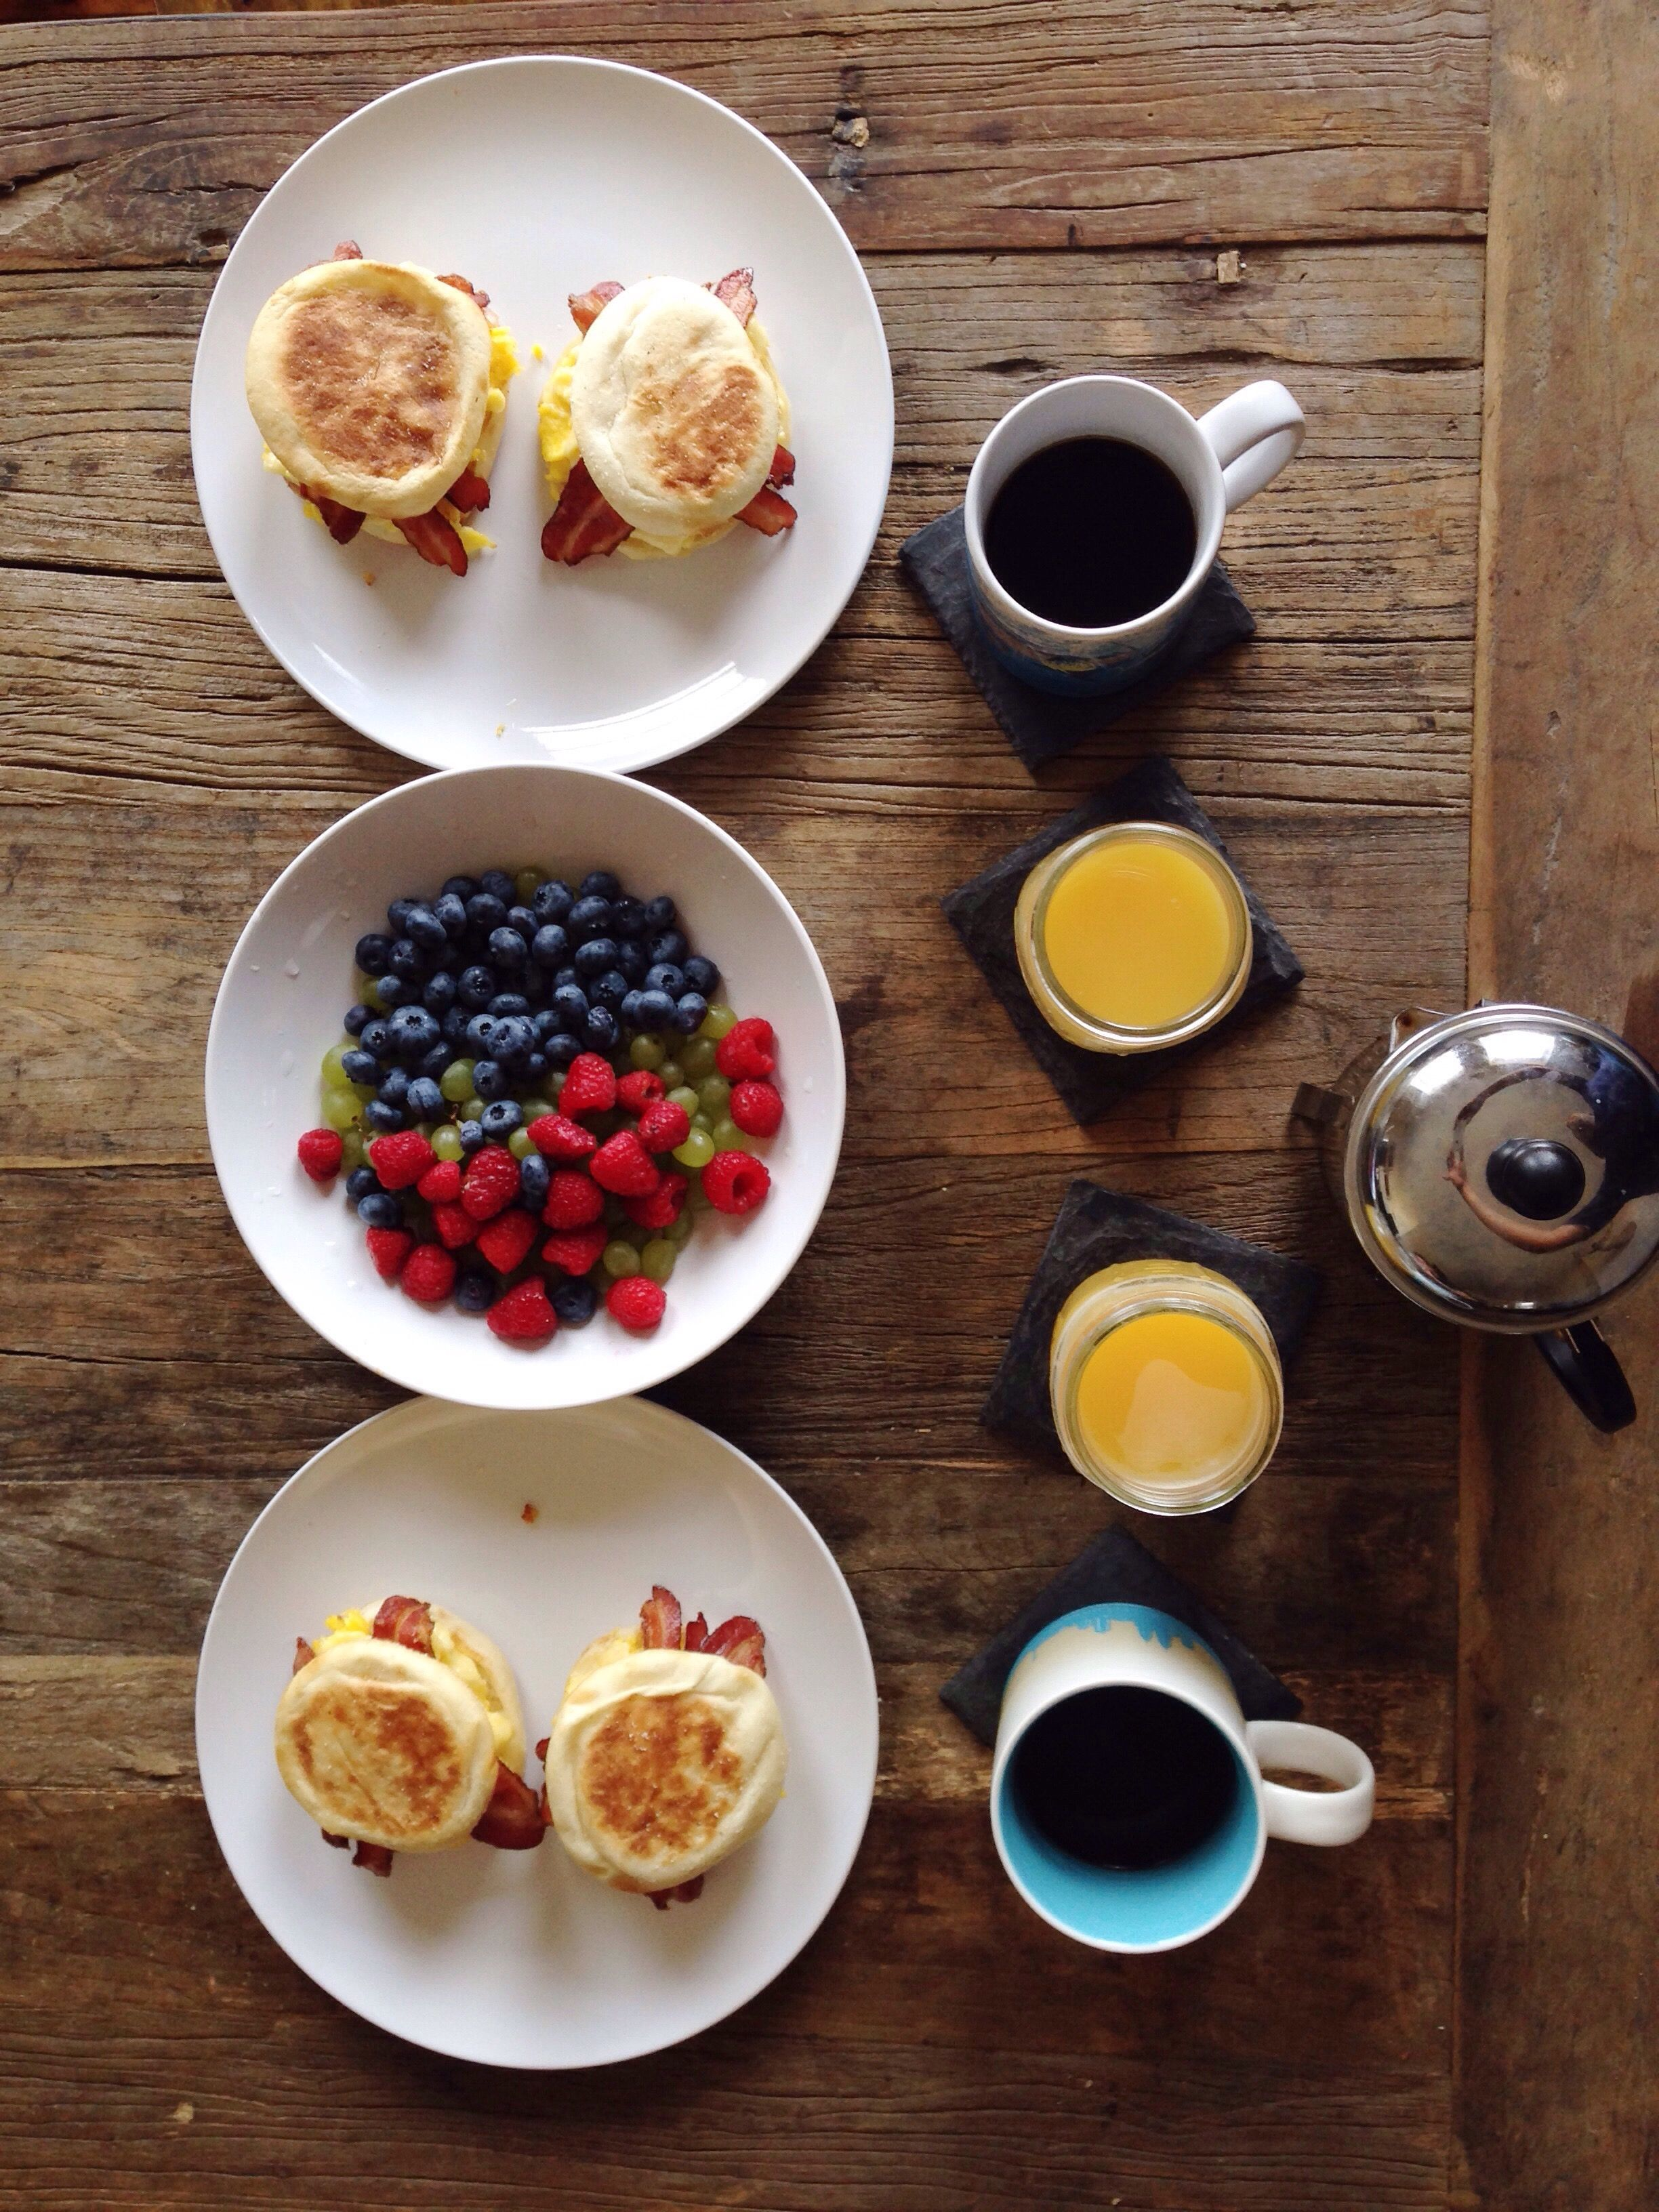 Pro Tips 5 Simple Hacks For Healthier Eating